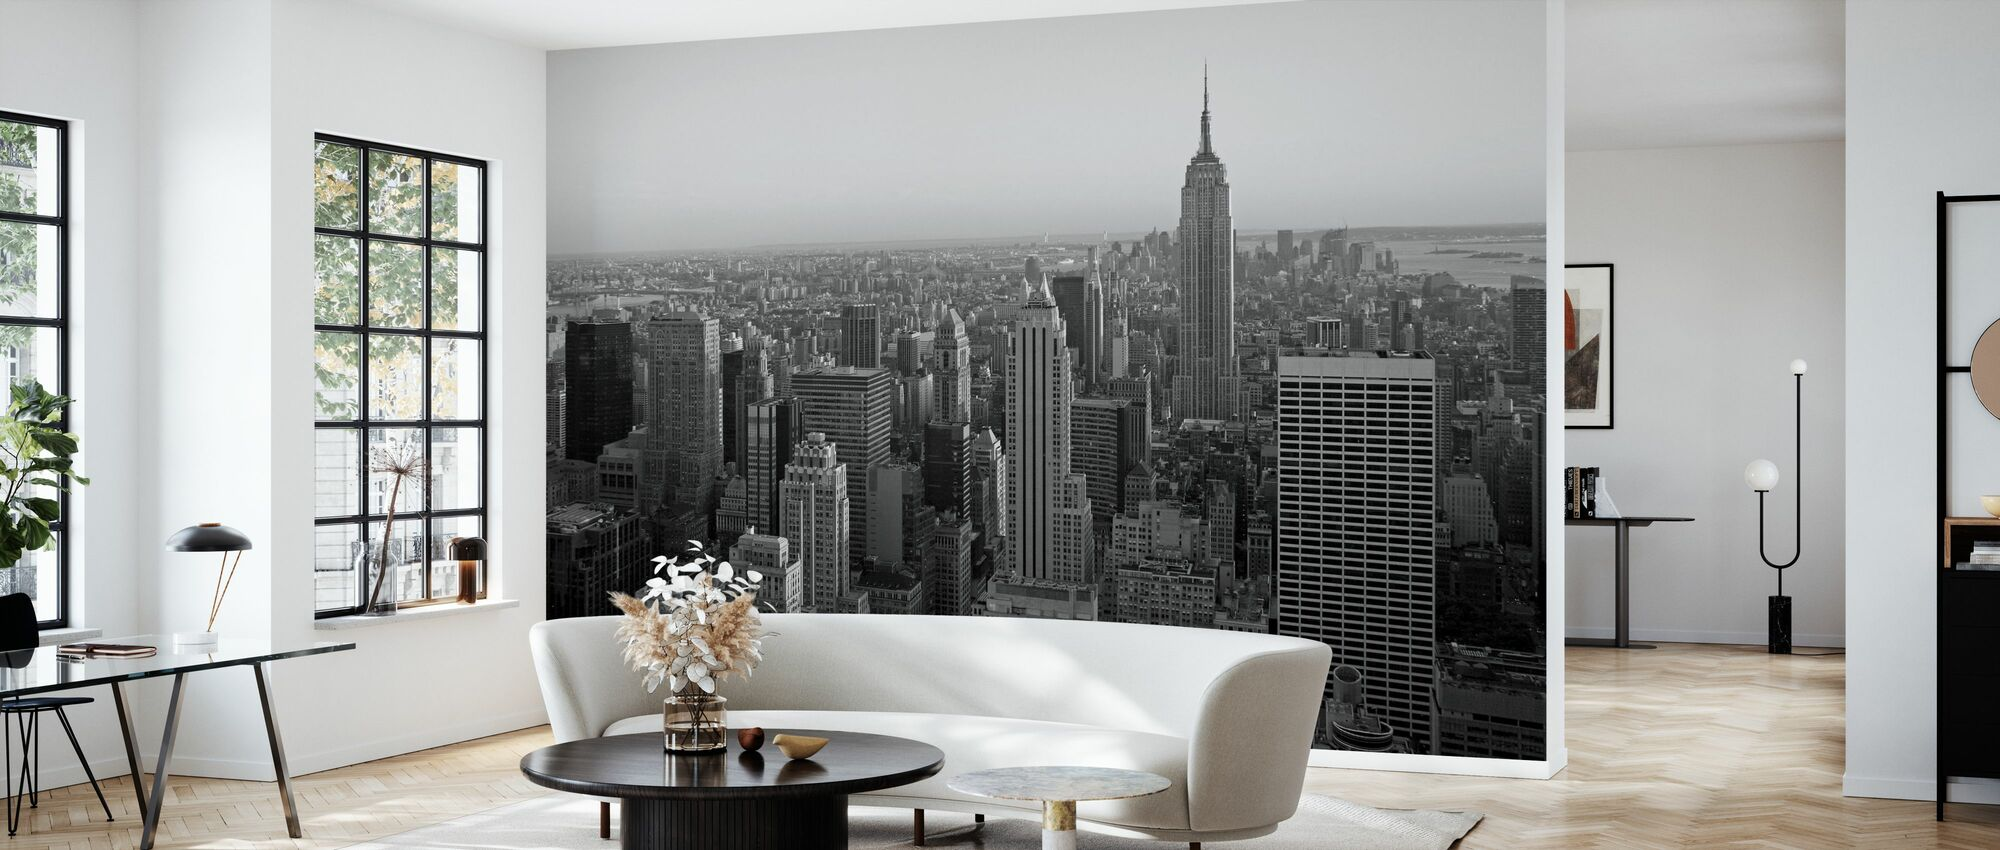 New York City, New York - Wallpaper - Living Room